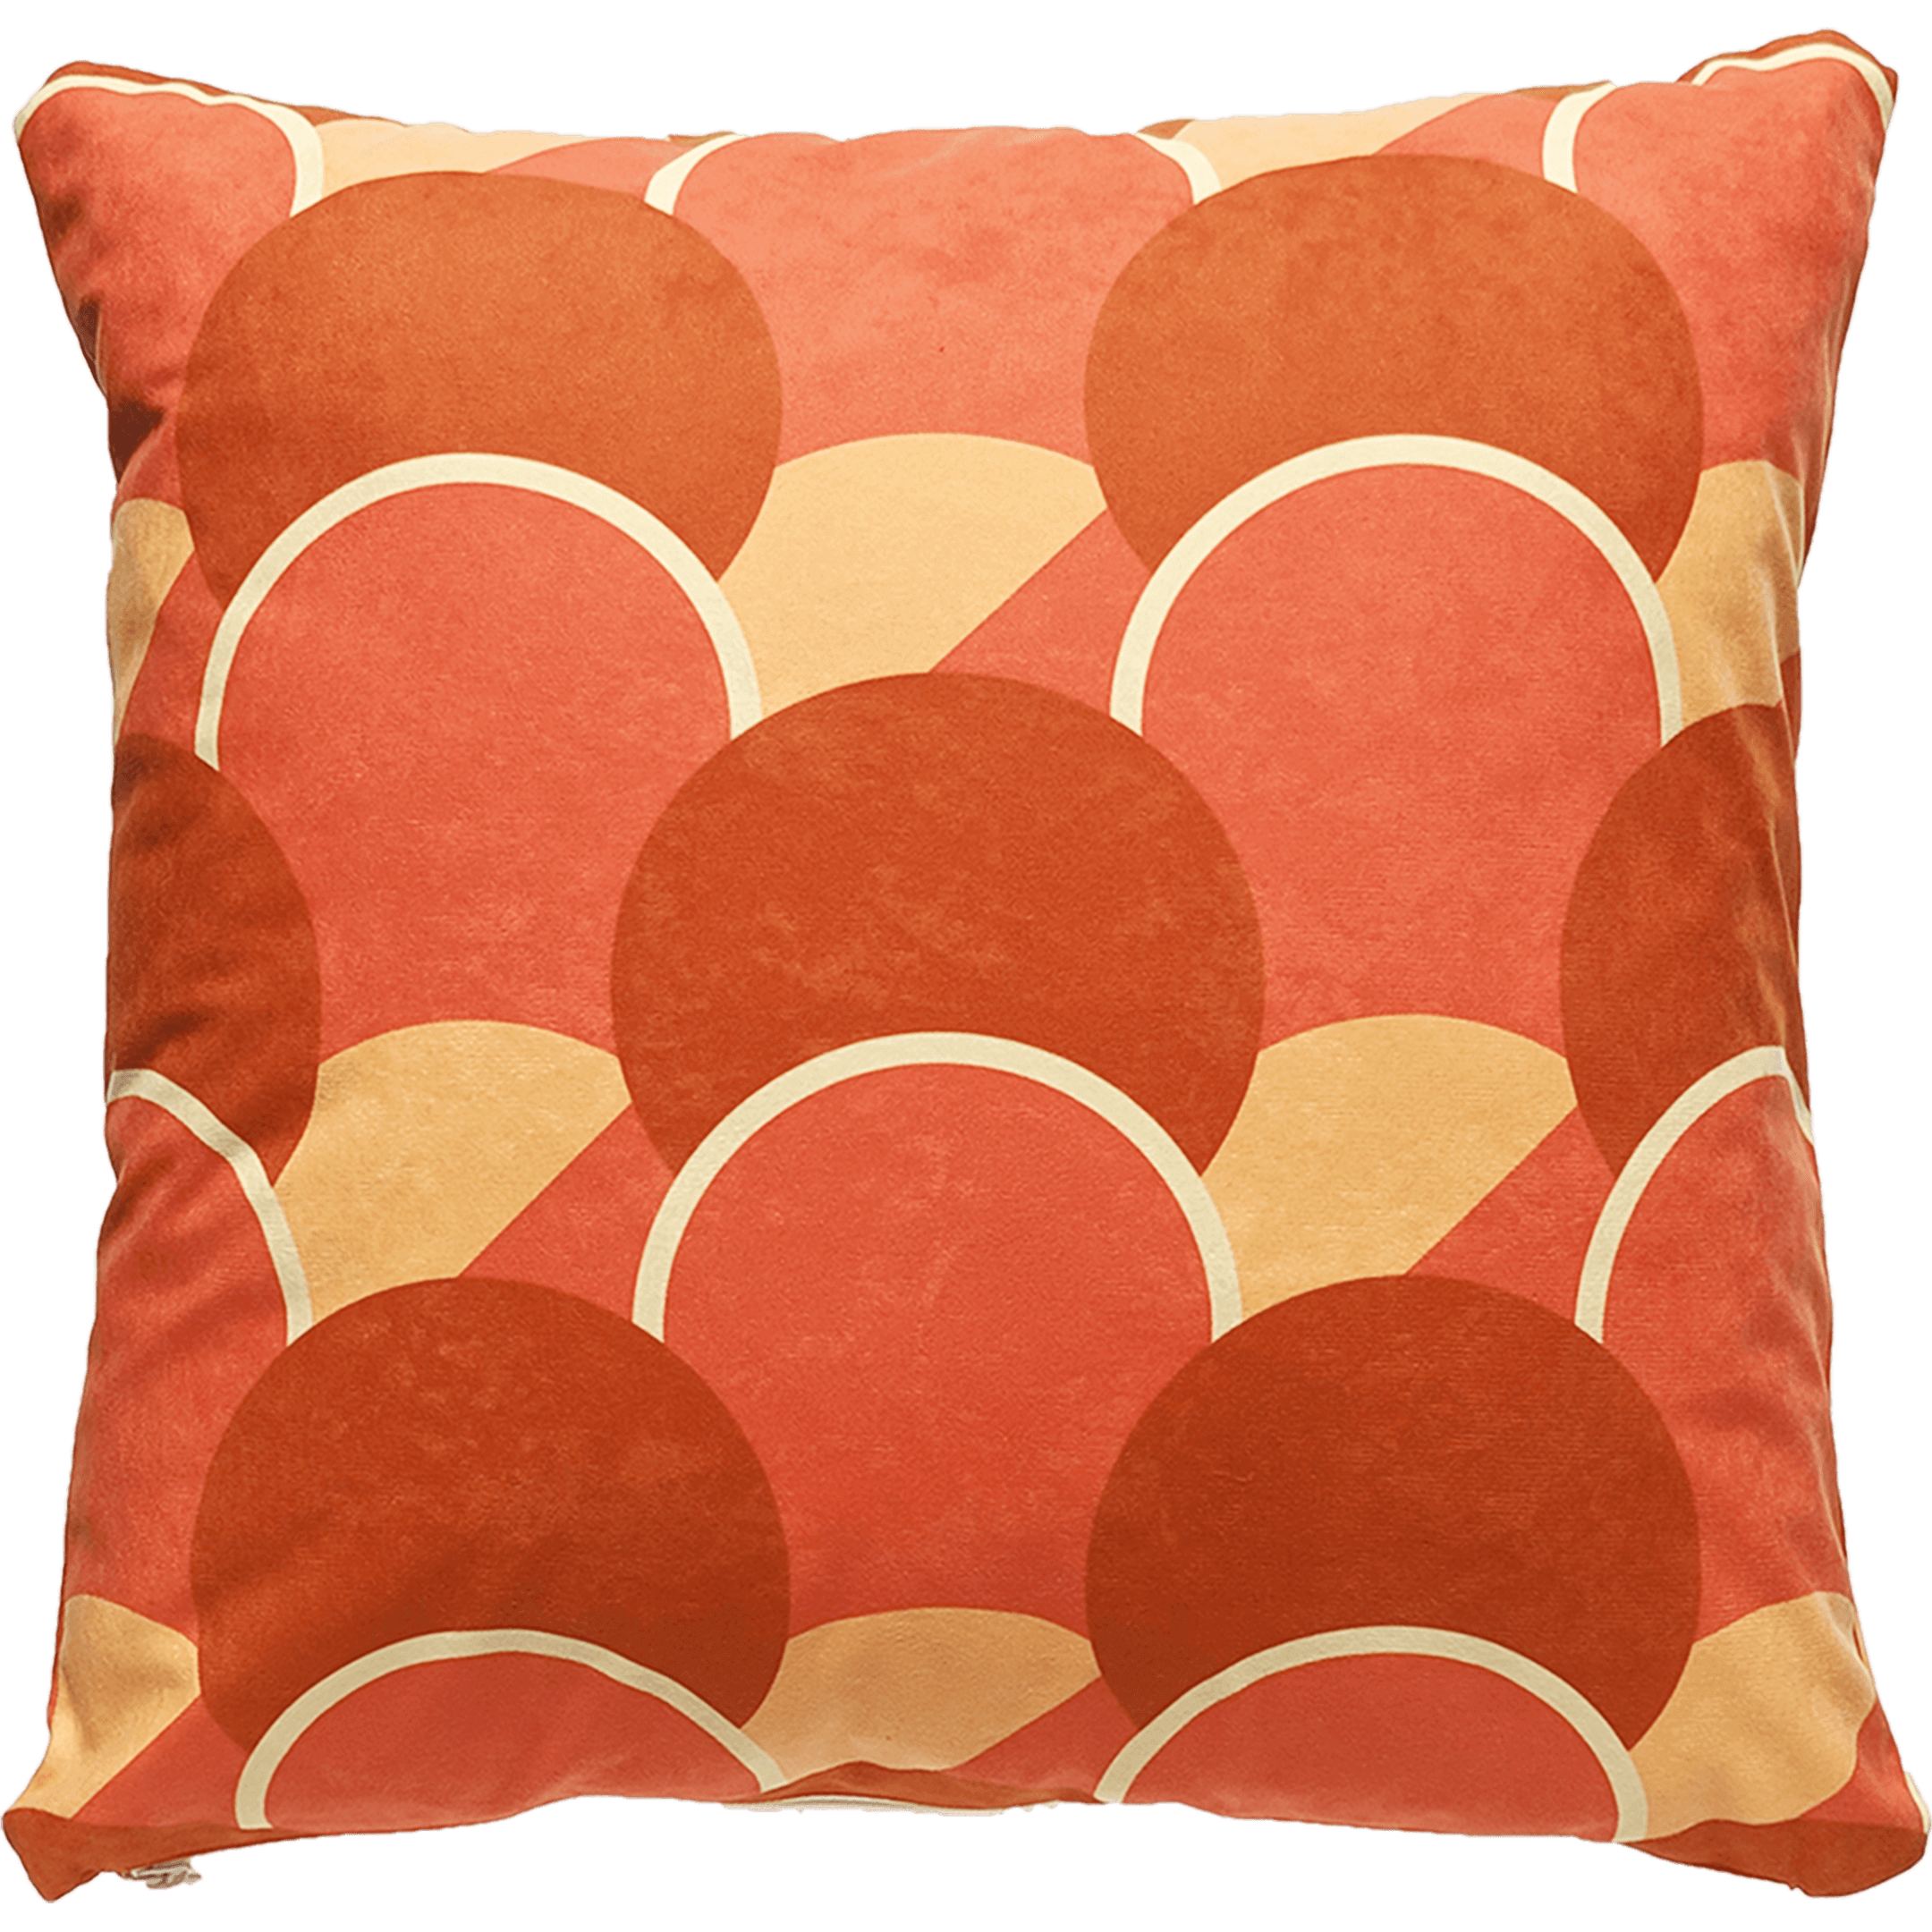 Patterned faux suede orange throw pillow. Peach, red orange and dark orange circular forms lined in ivory.